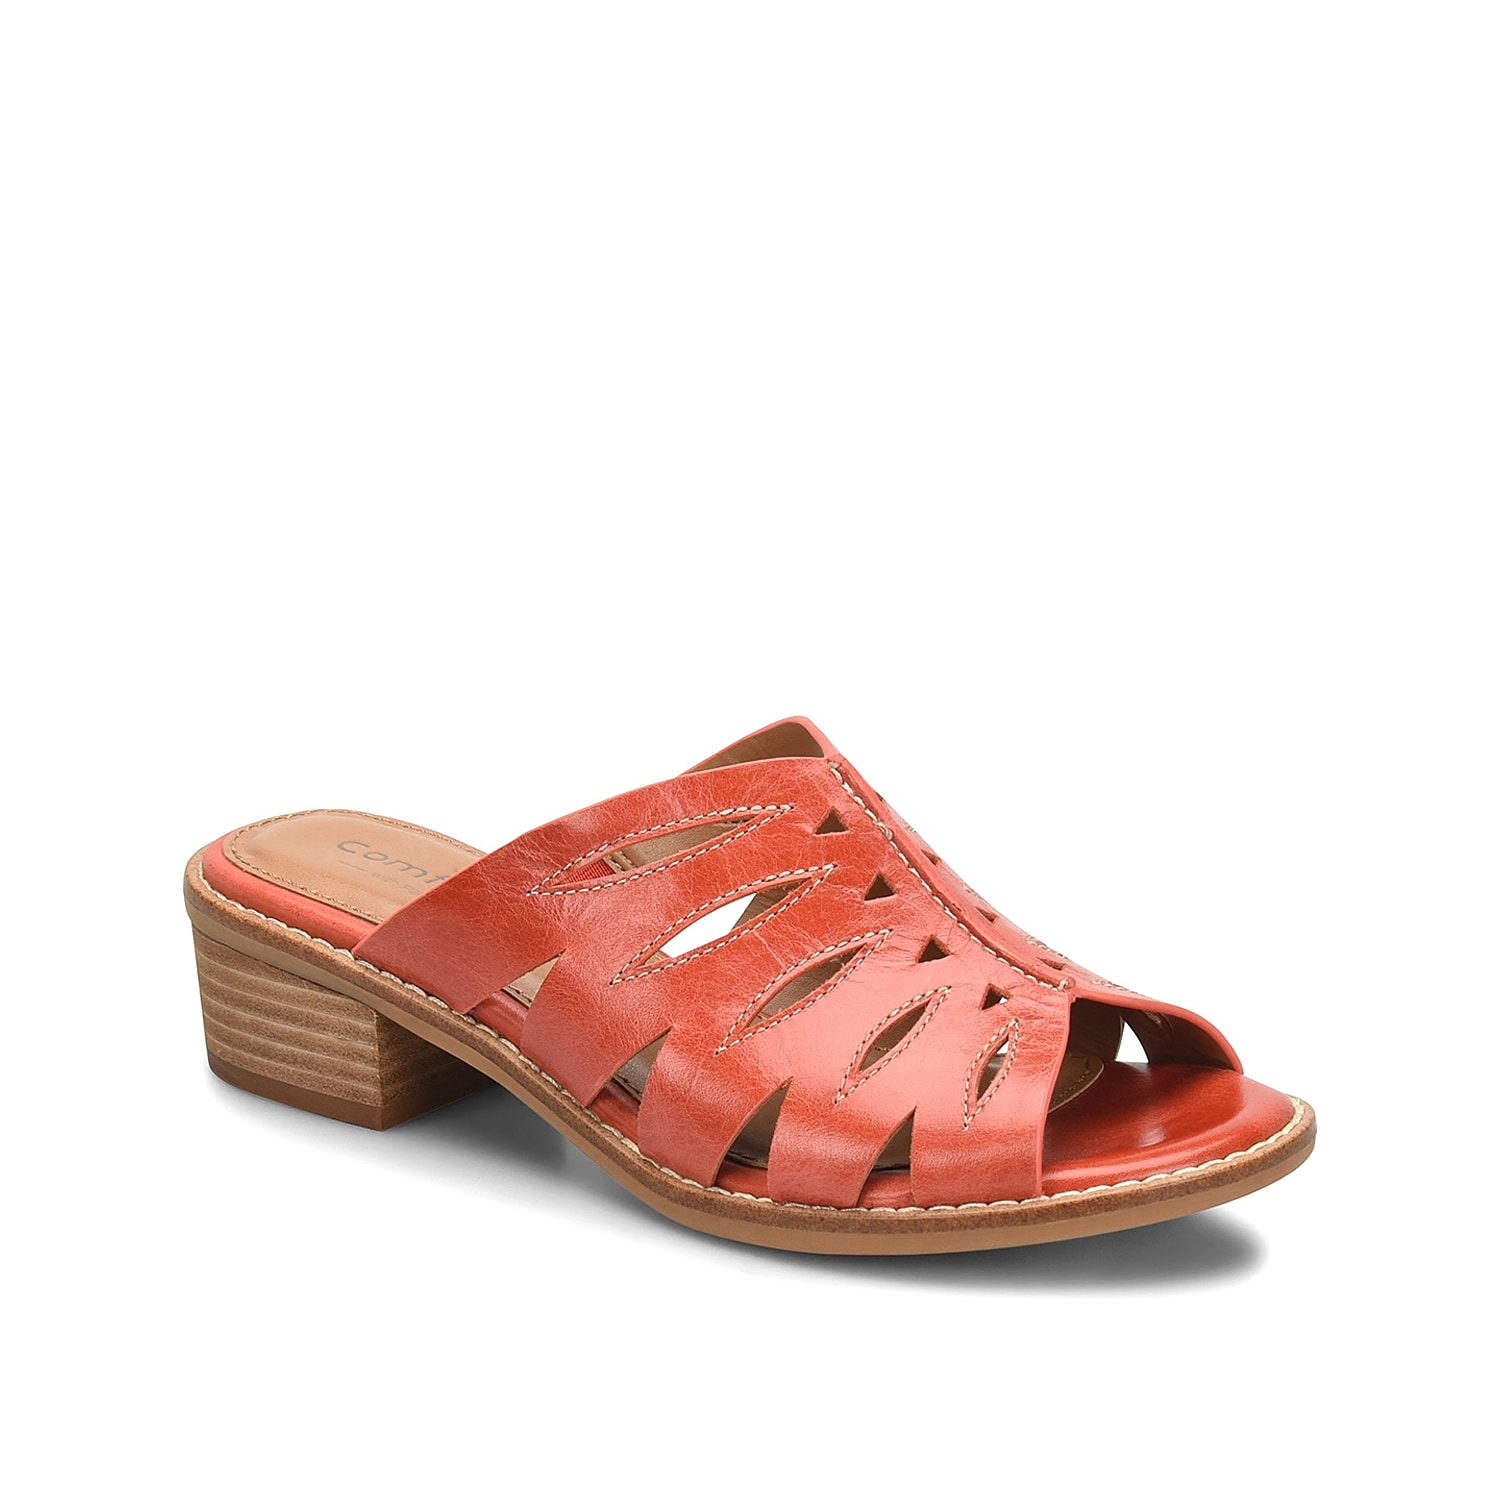 The Breah sandal from Comfortiva will be the perfect piece to complete your fabulous shoe collection. This leather pair is fashioned with laser-cut-outs and a stacked heel for all the right height!